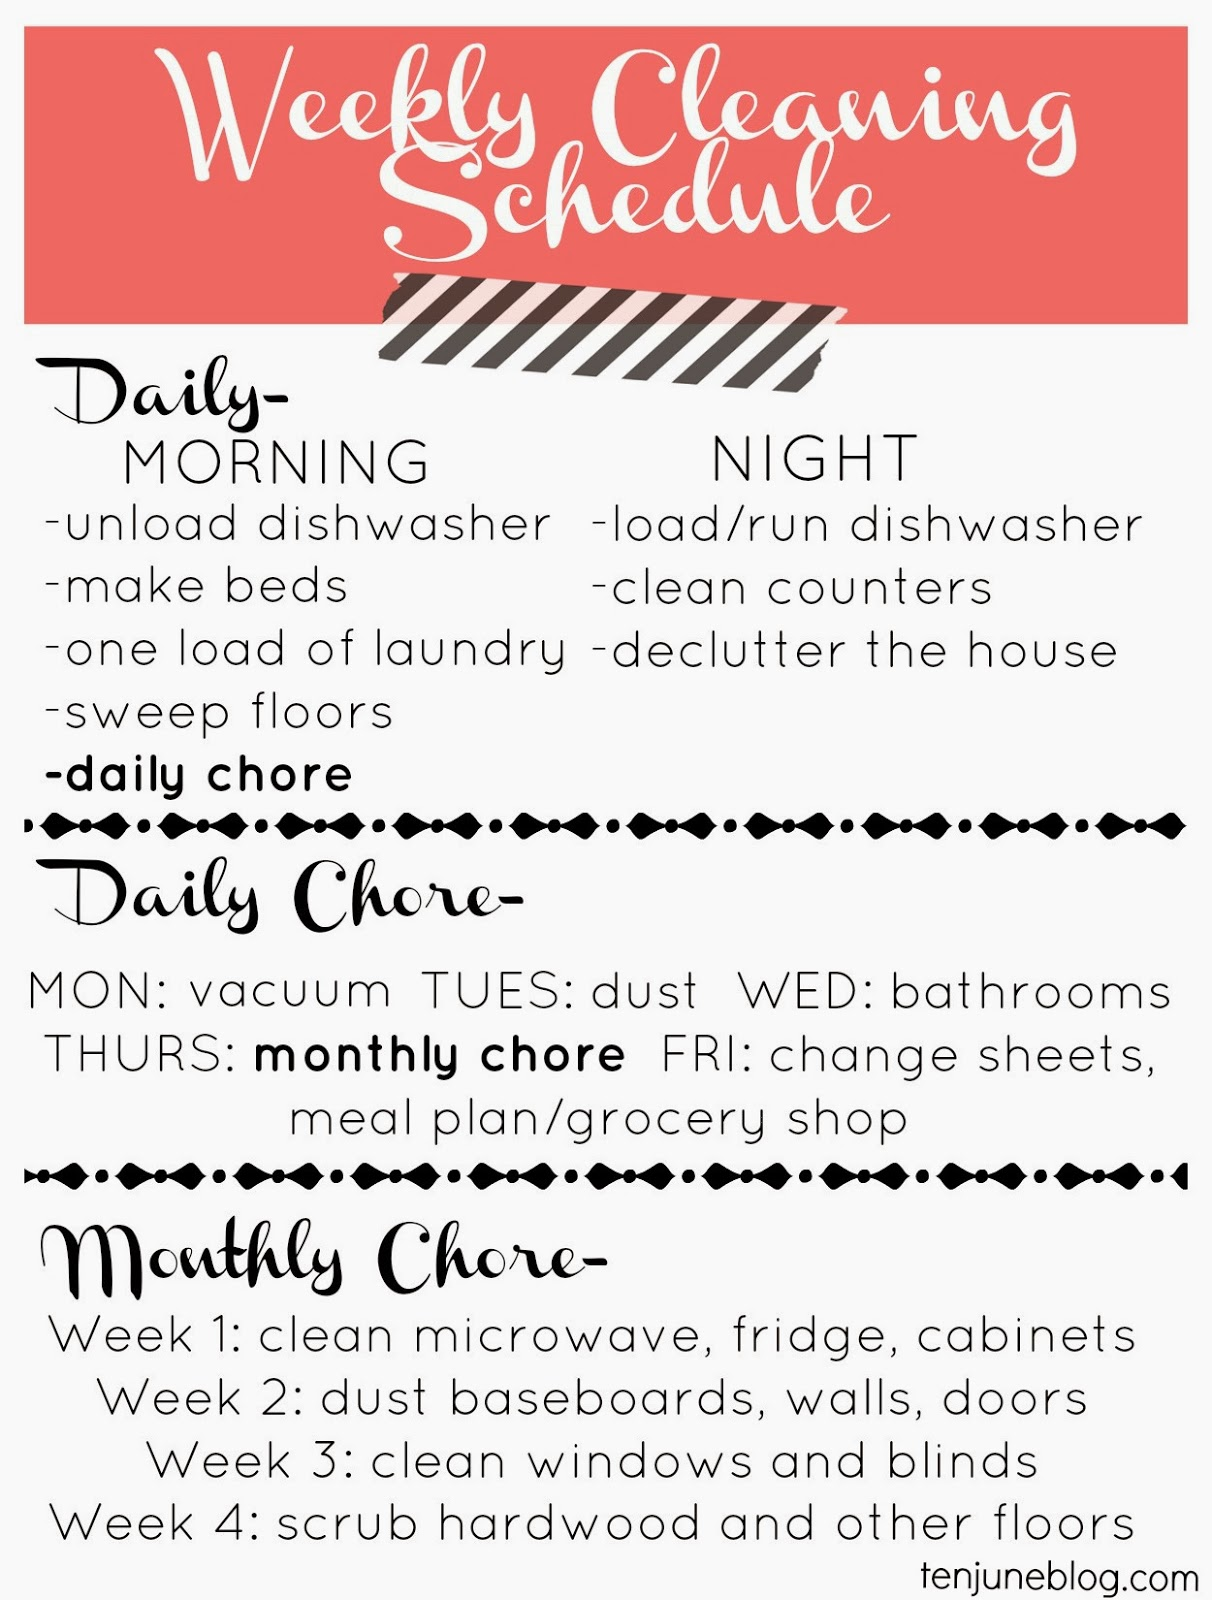 Adorable image with regard to weekly cleaning schedule printable